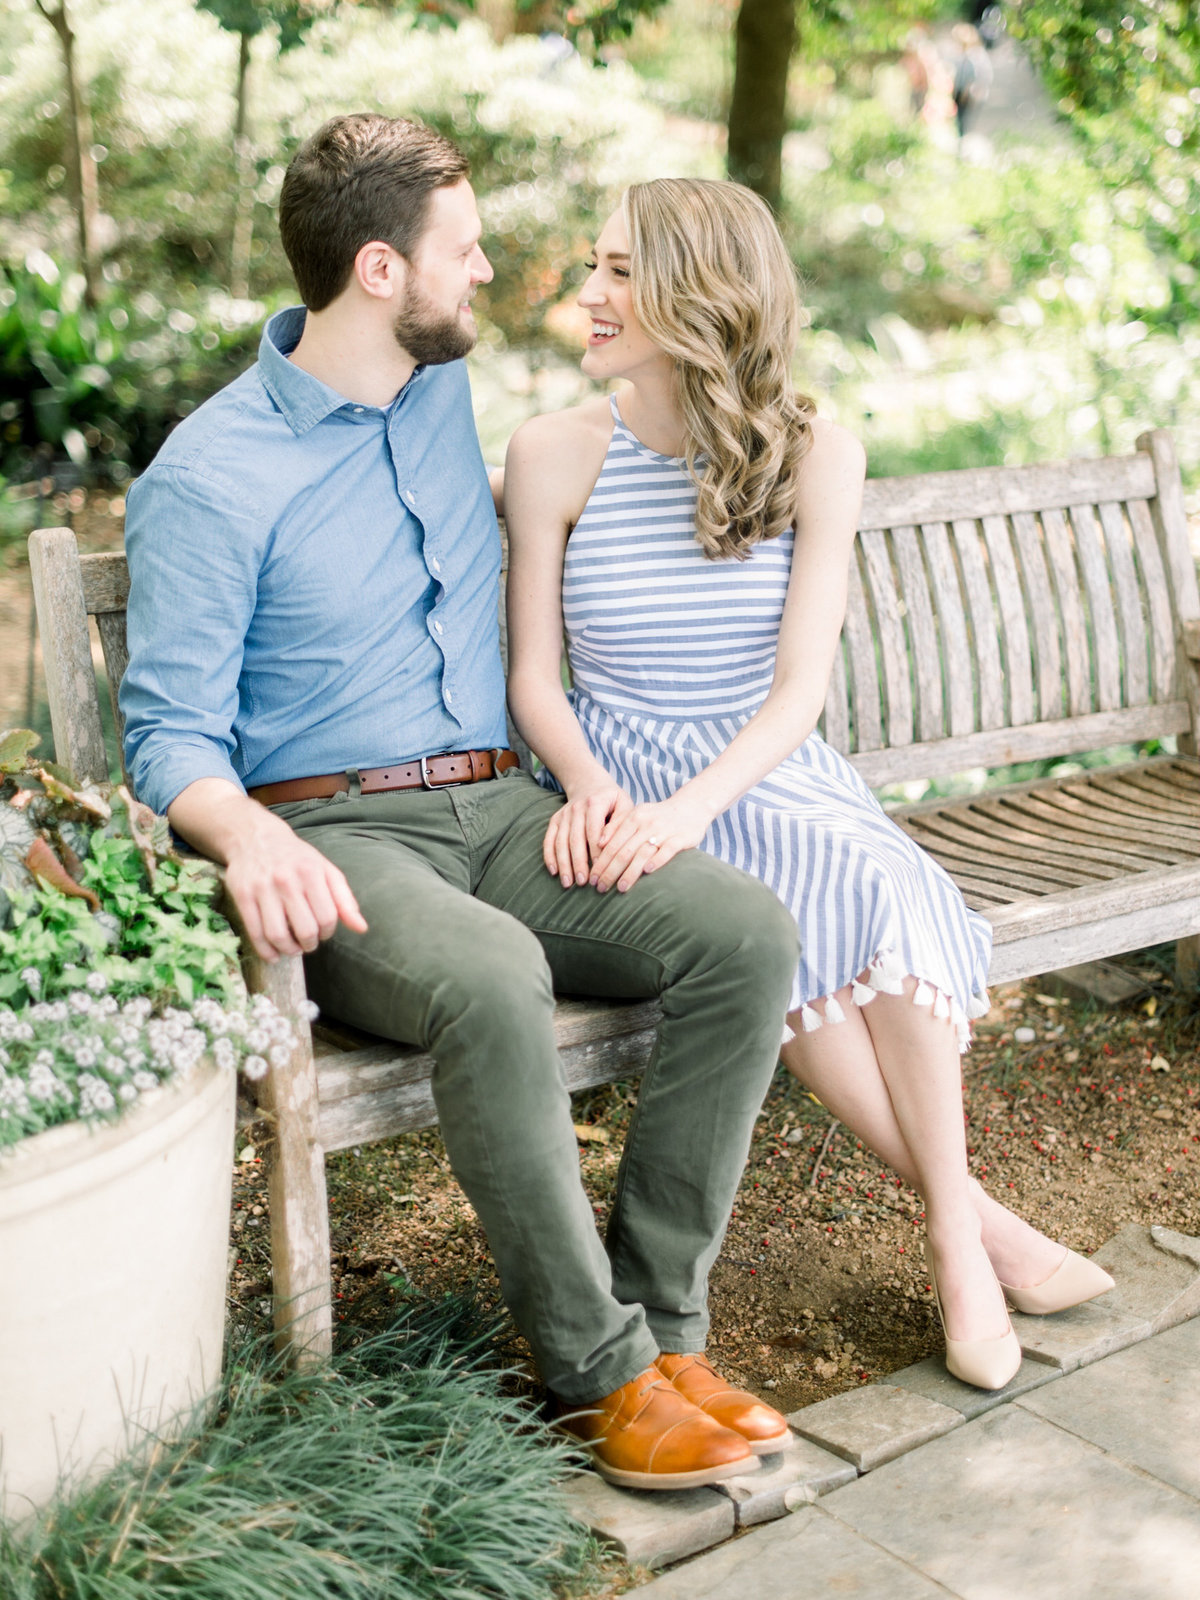 Courtney Hanson Photography - Dallas Spring Engagement Photos at Dallas Arboretum-2613